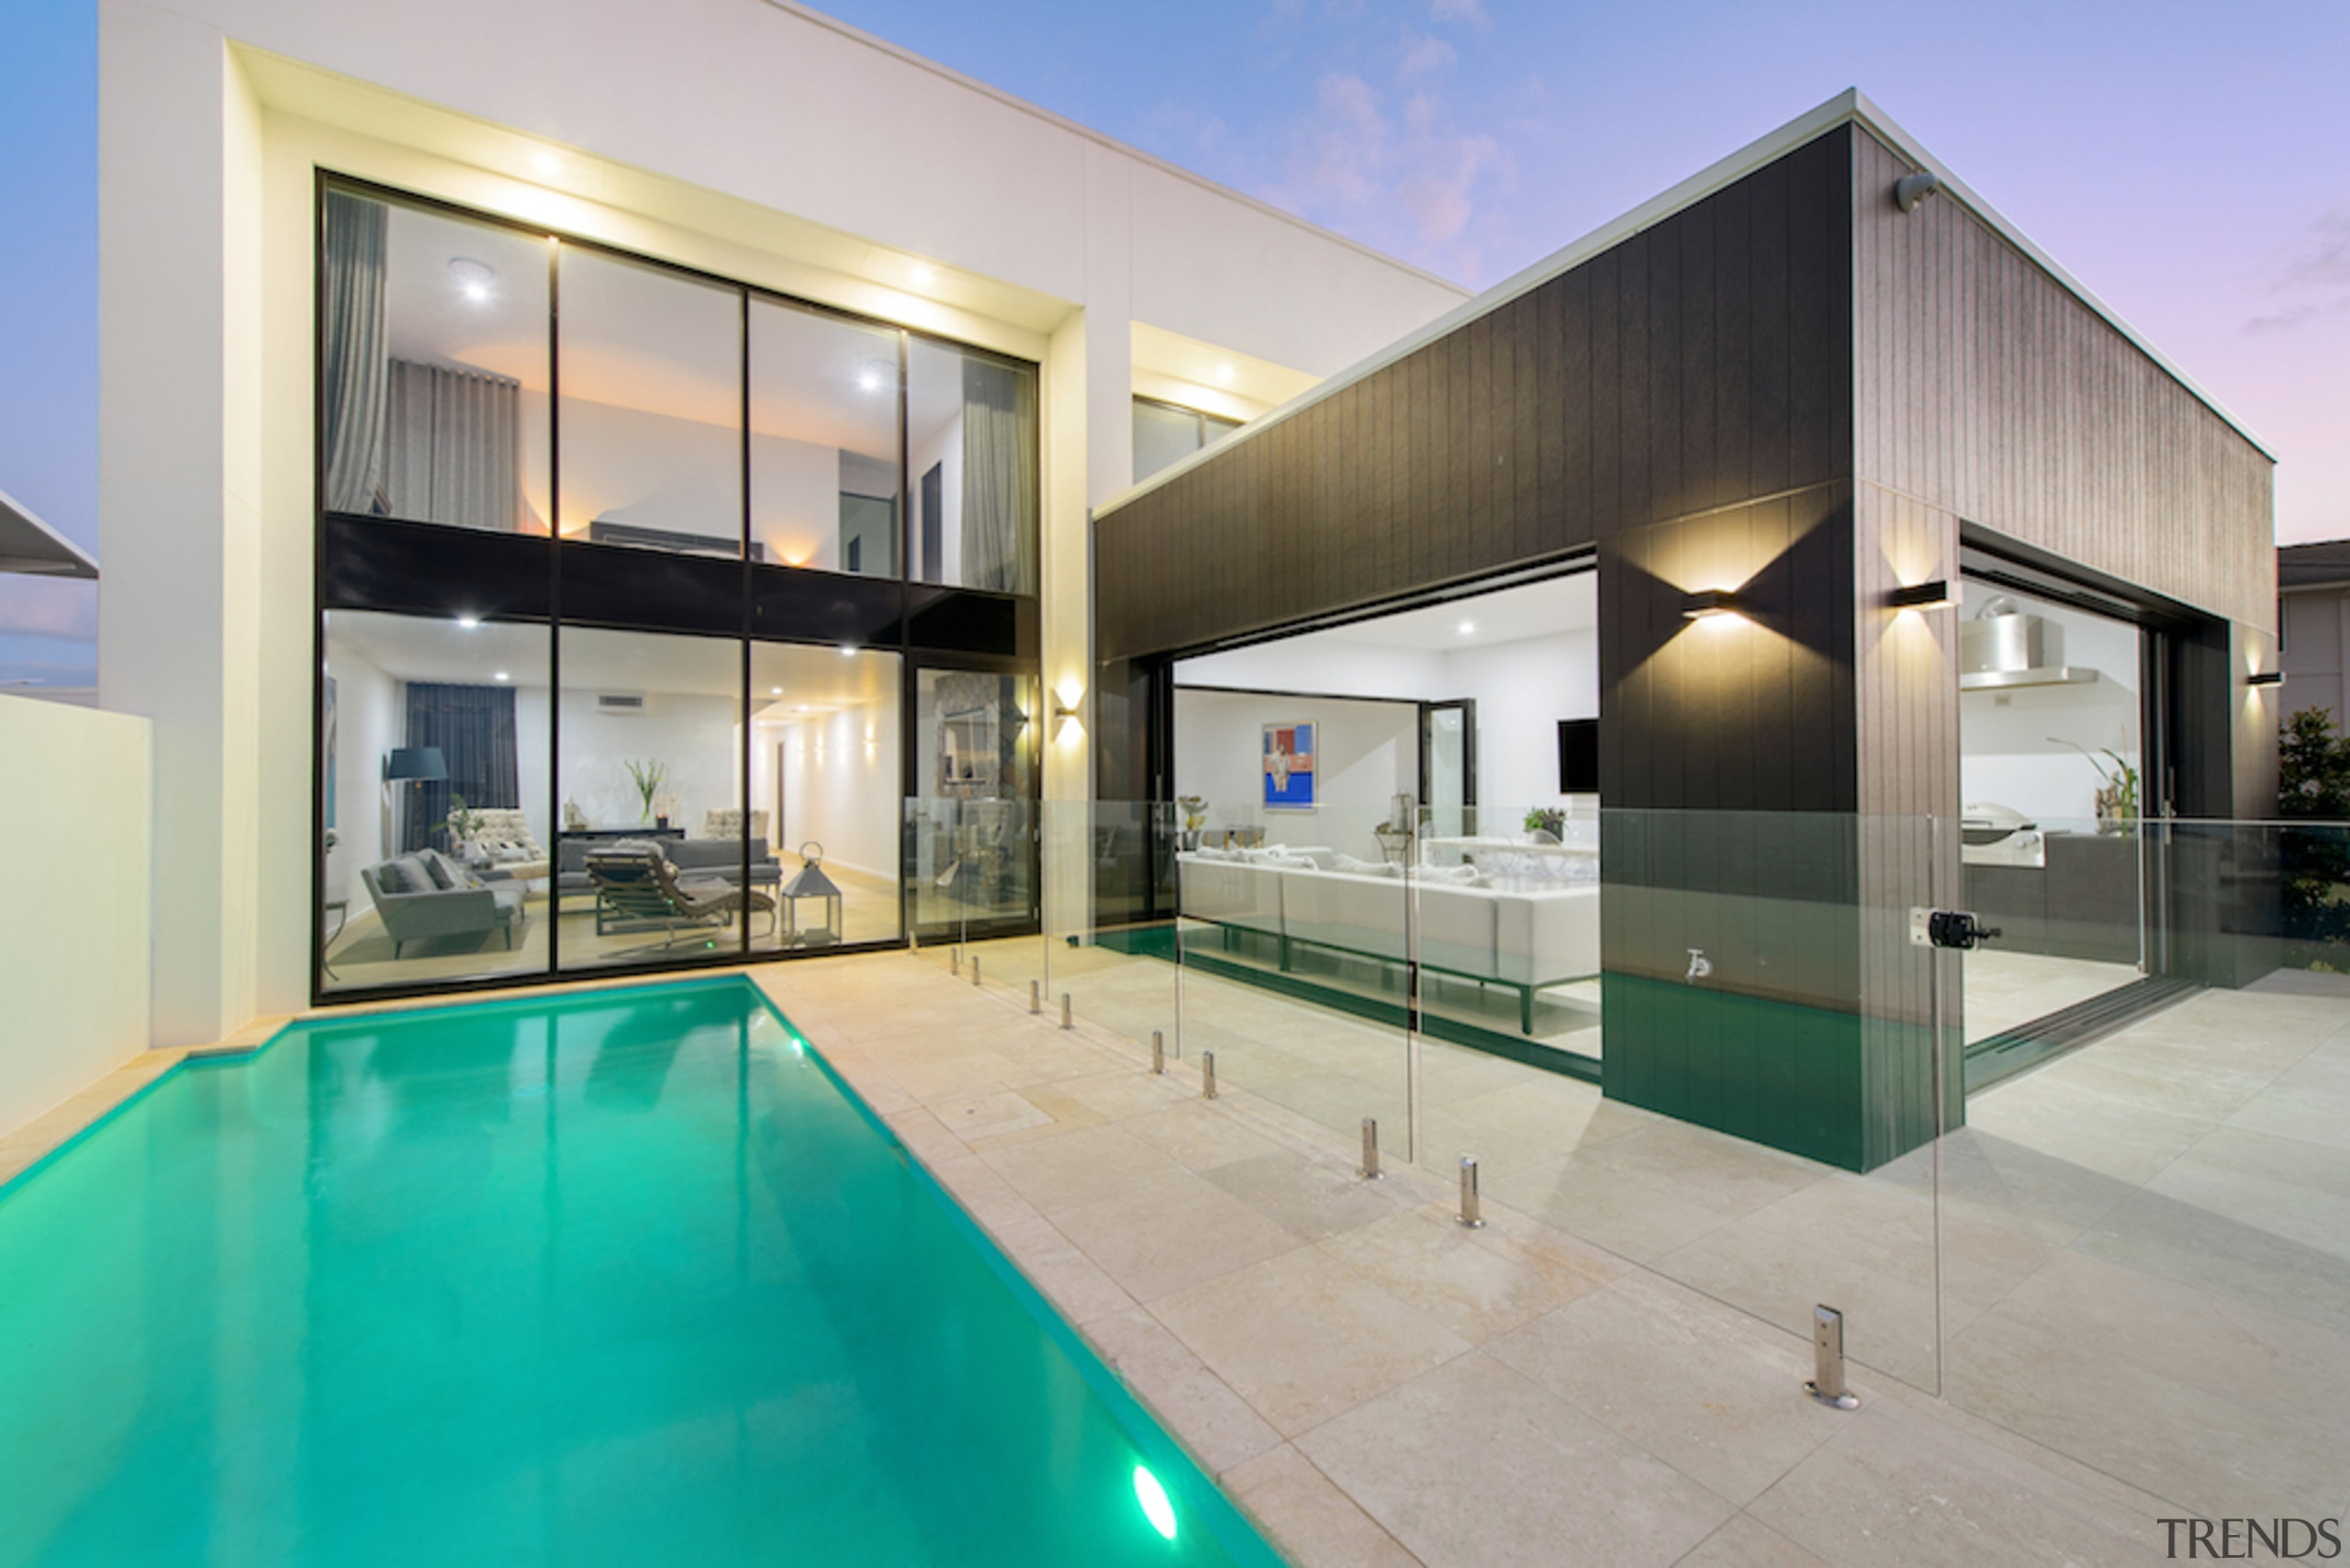 Glass balustrading optimises the home's stunning outlooks. The apartment, architecture, building, ceiling, design, estate, facade, glass, home, house, interior design, property, real estate, residential area, room, swimming pool, villa, gray